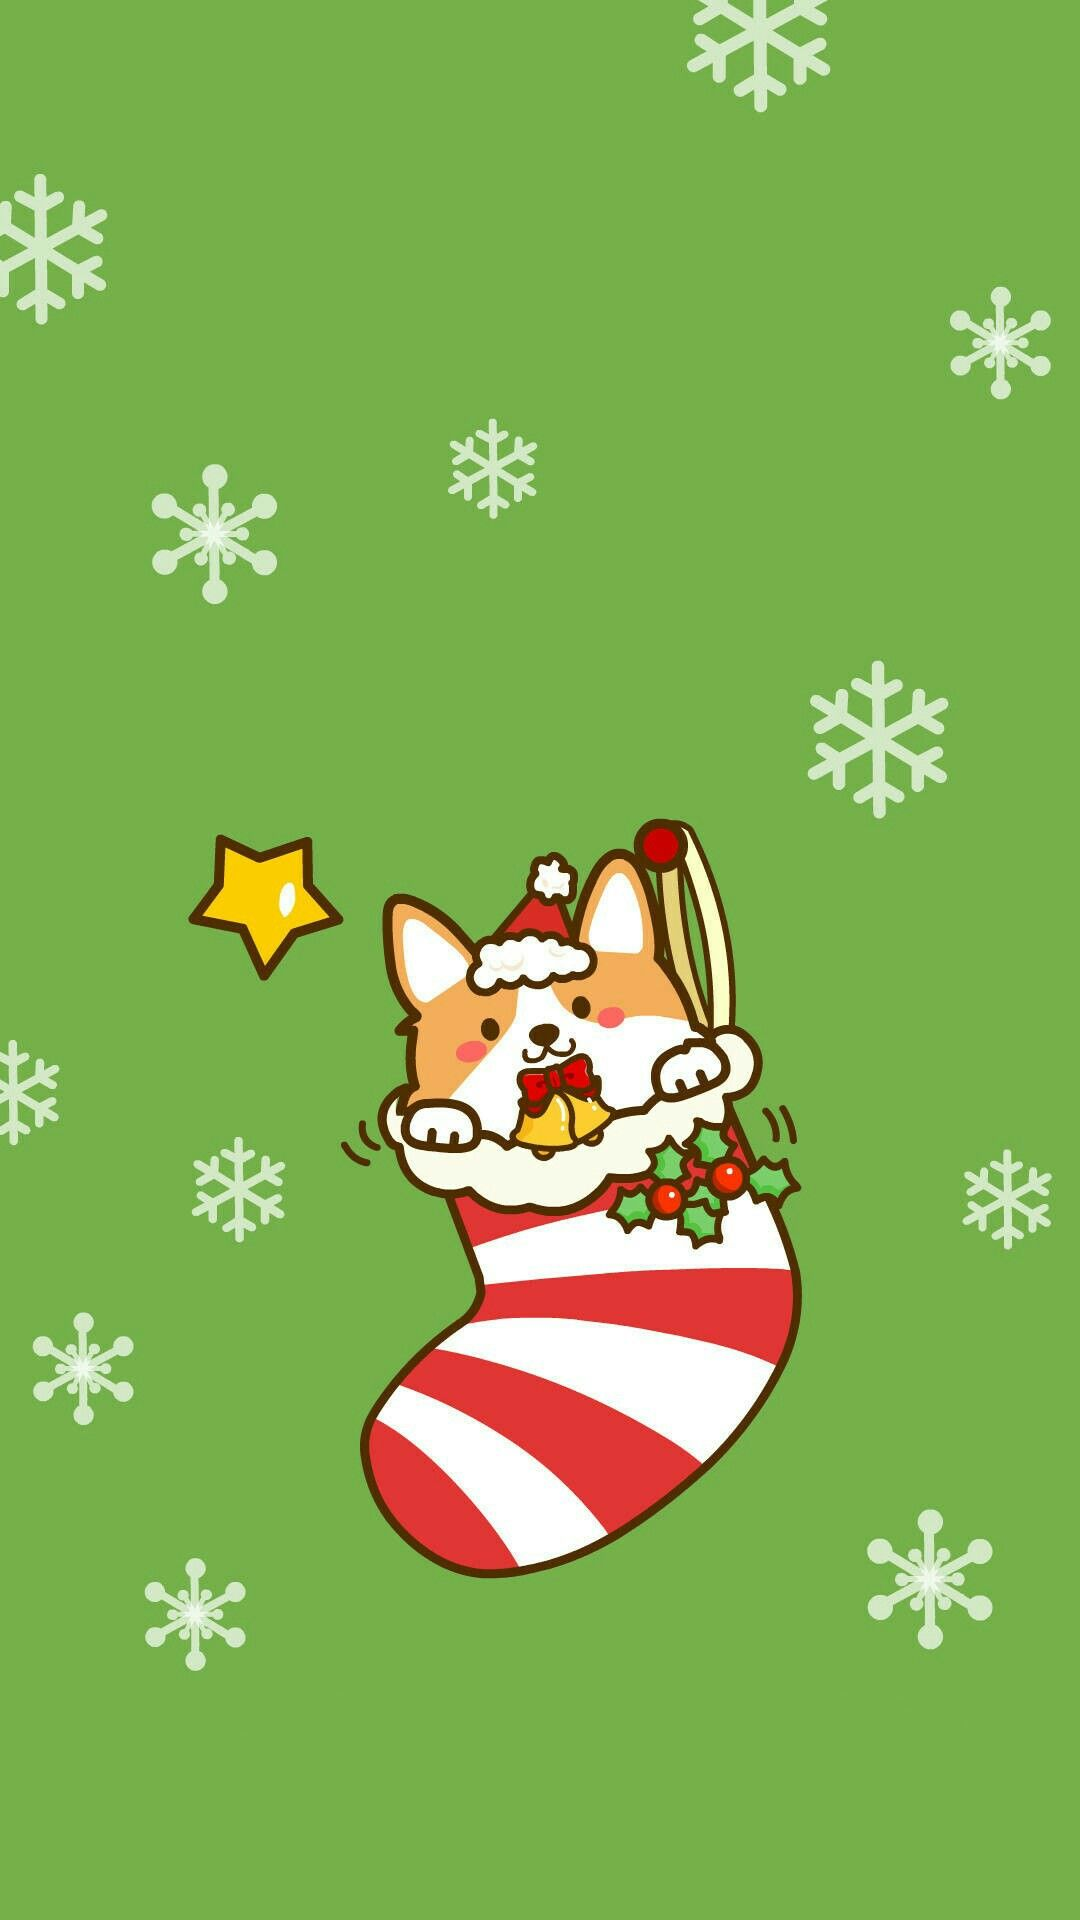 Dog Christmas S P S Decking Halls In 2019 Pinterest Cute